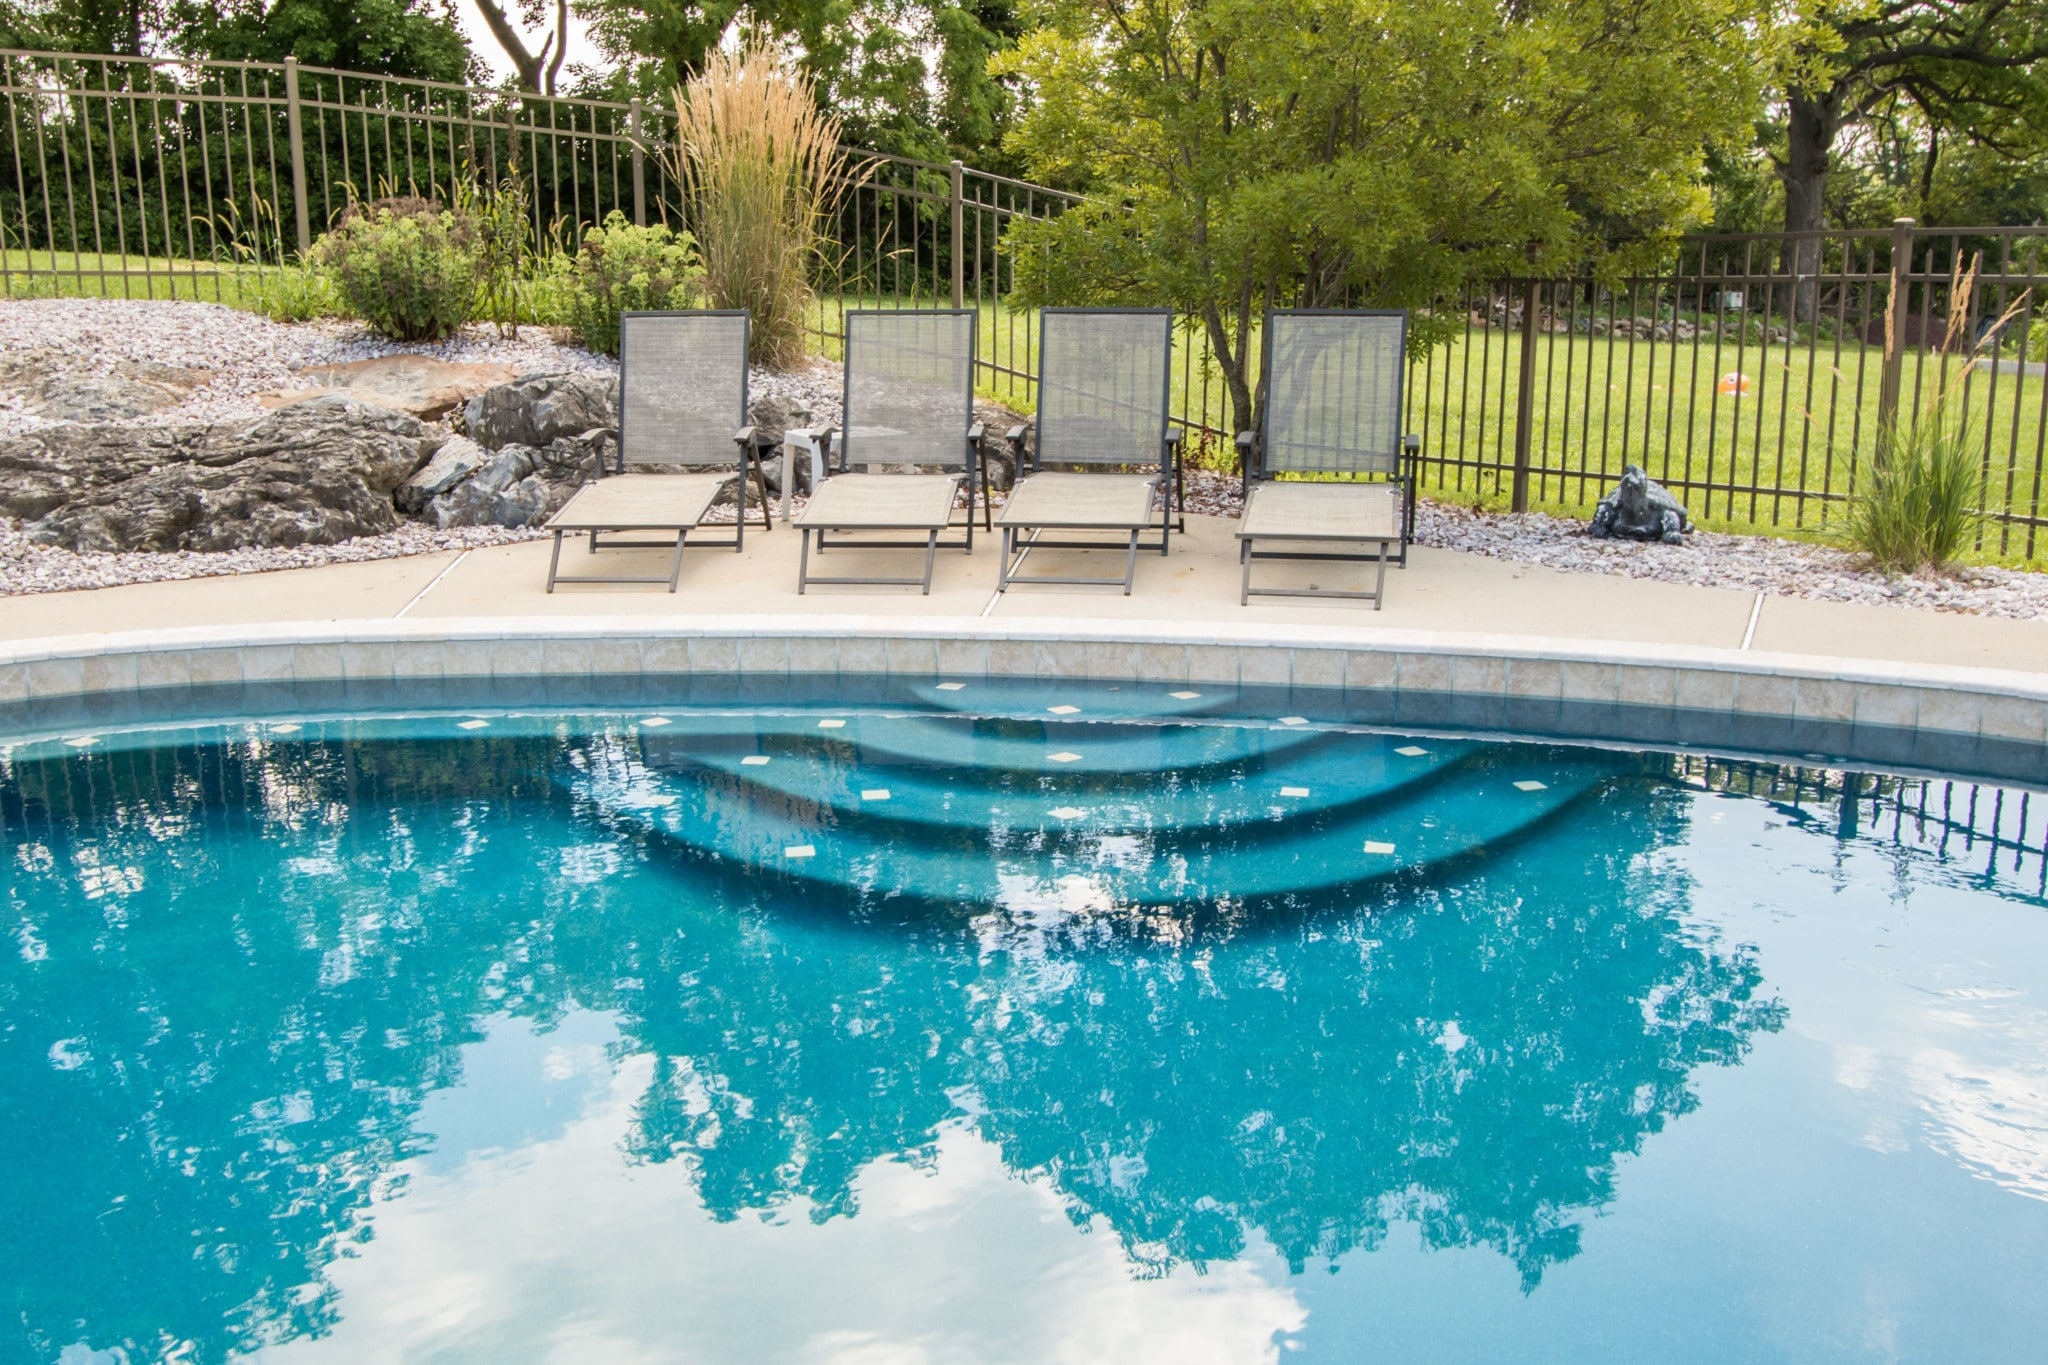 Coronado\'s Pool Renovations Earns Rave Reviews from our ...